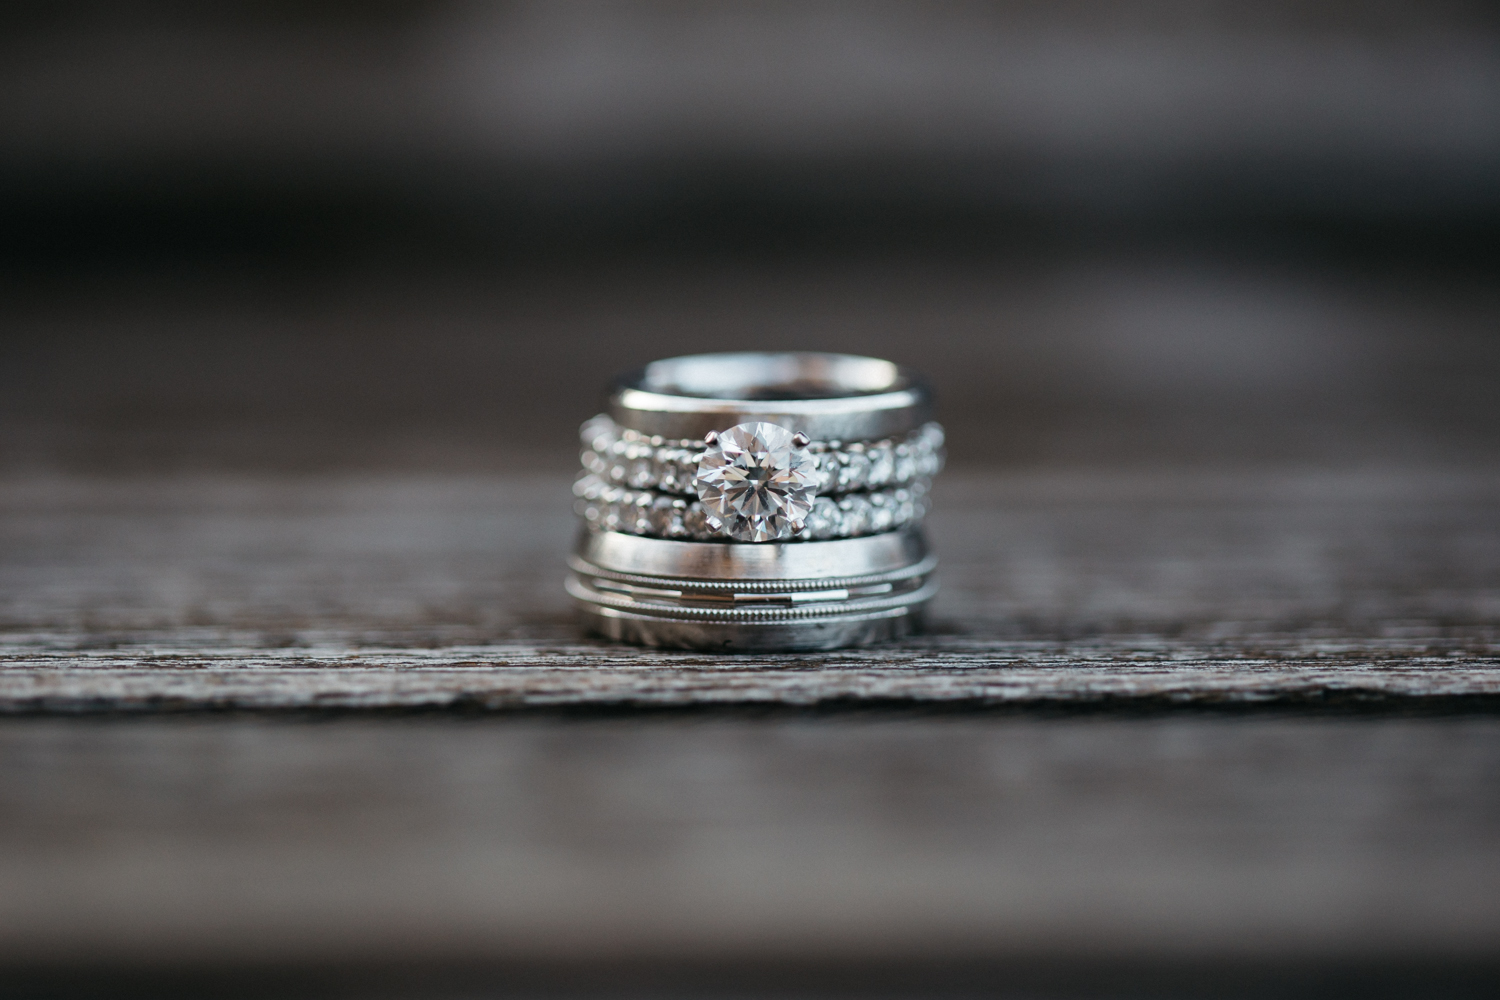 Ashley-reed-photography-pittsburgh-engagement-engagementphotography-engagementphotographer-stationsquare-statio-square-pittsburghengagementphotography-40.jpg